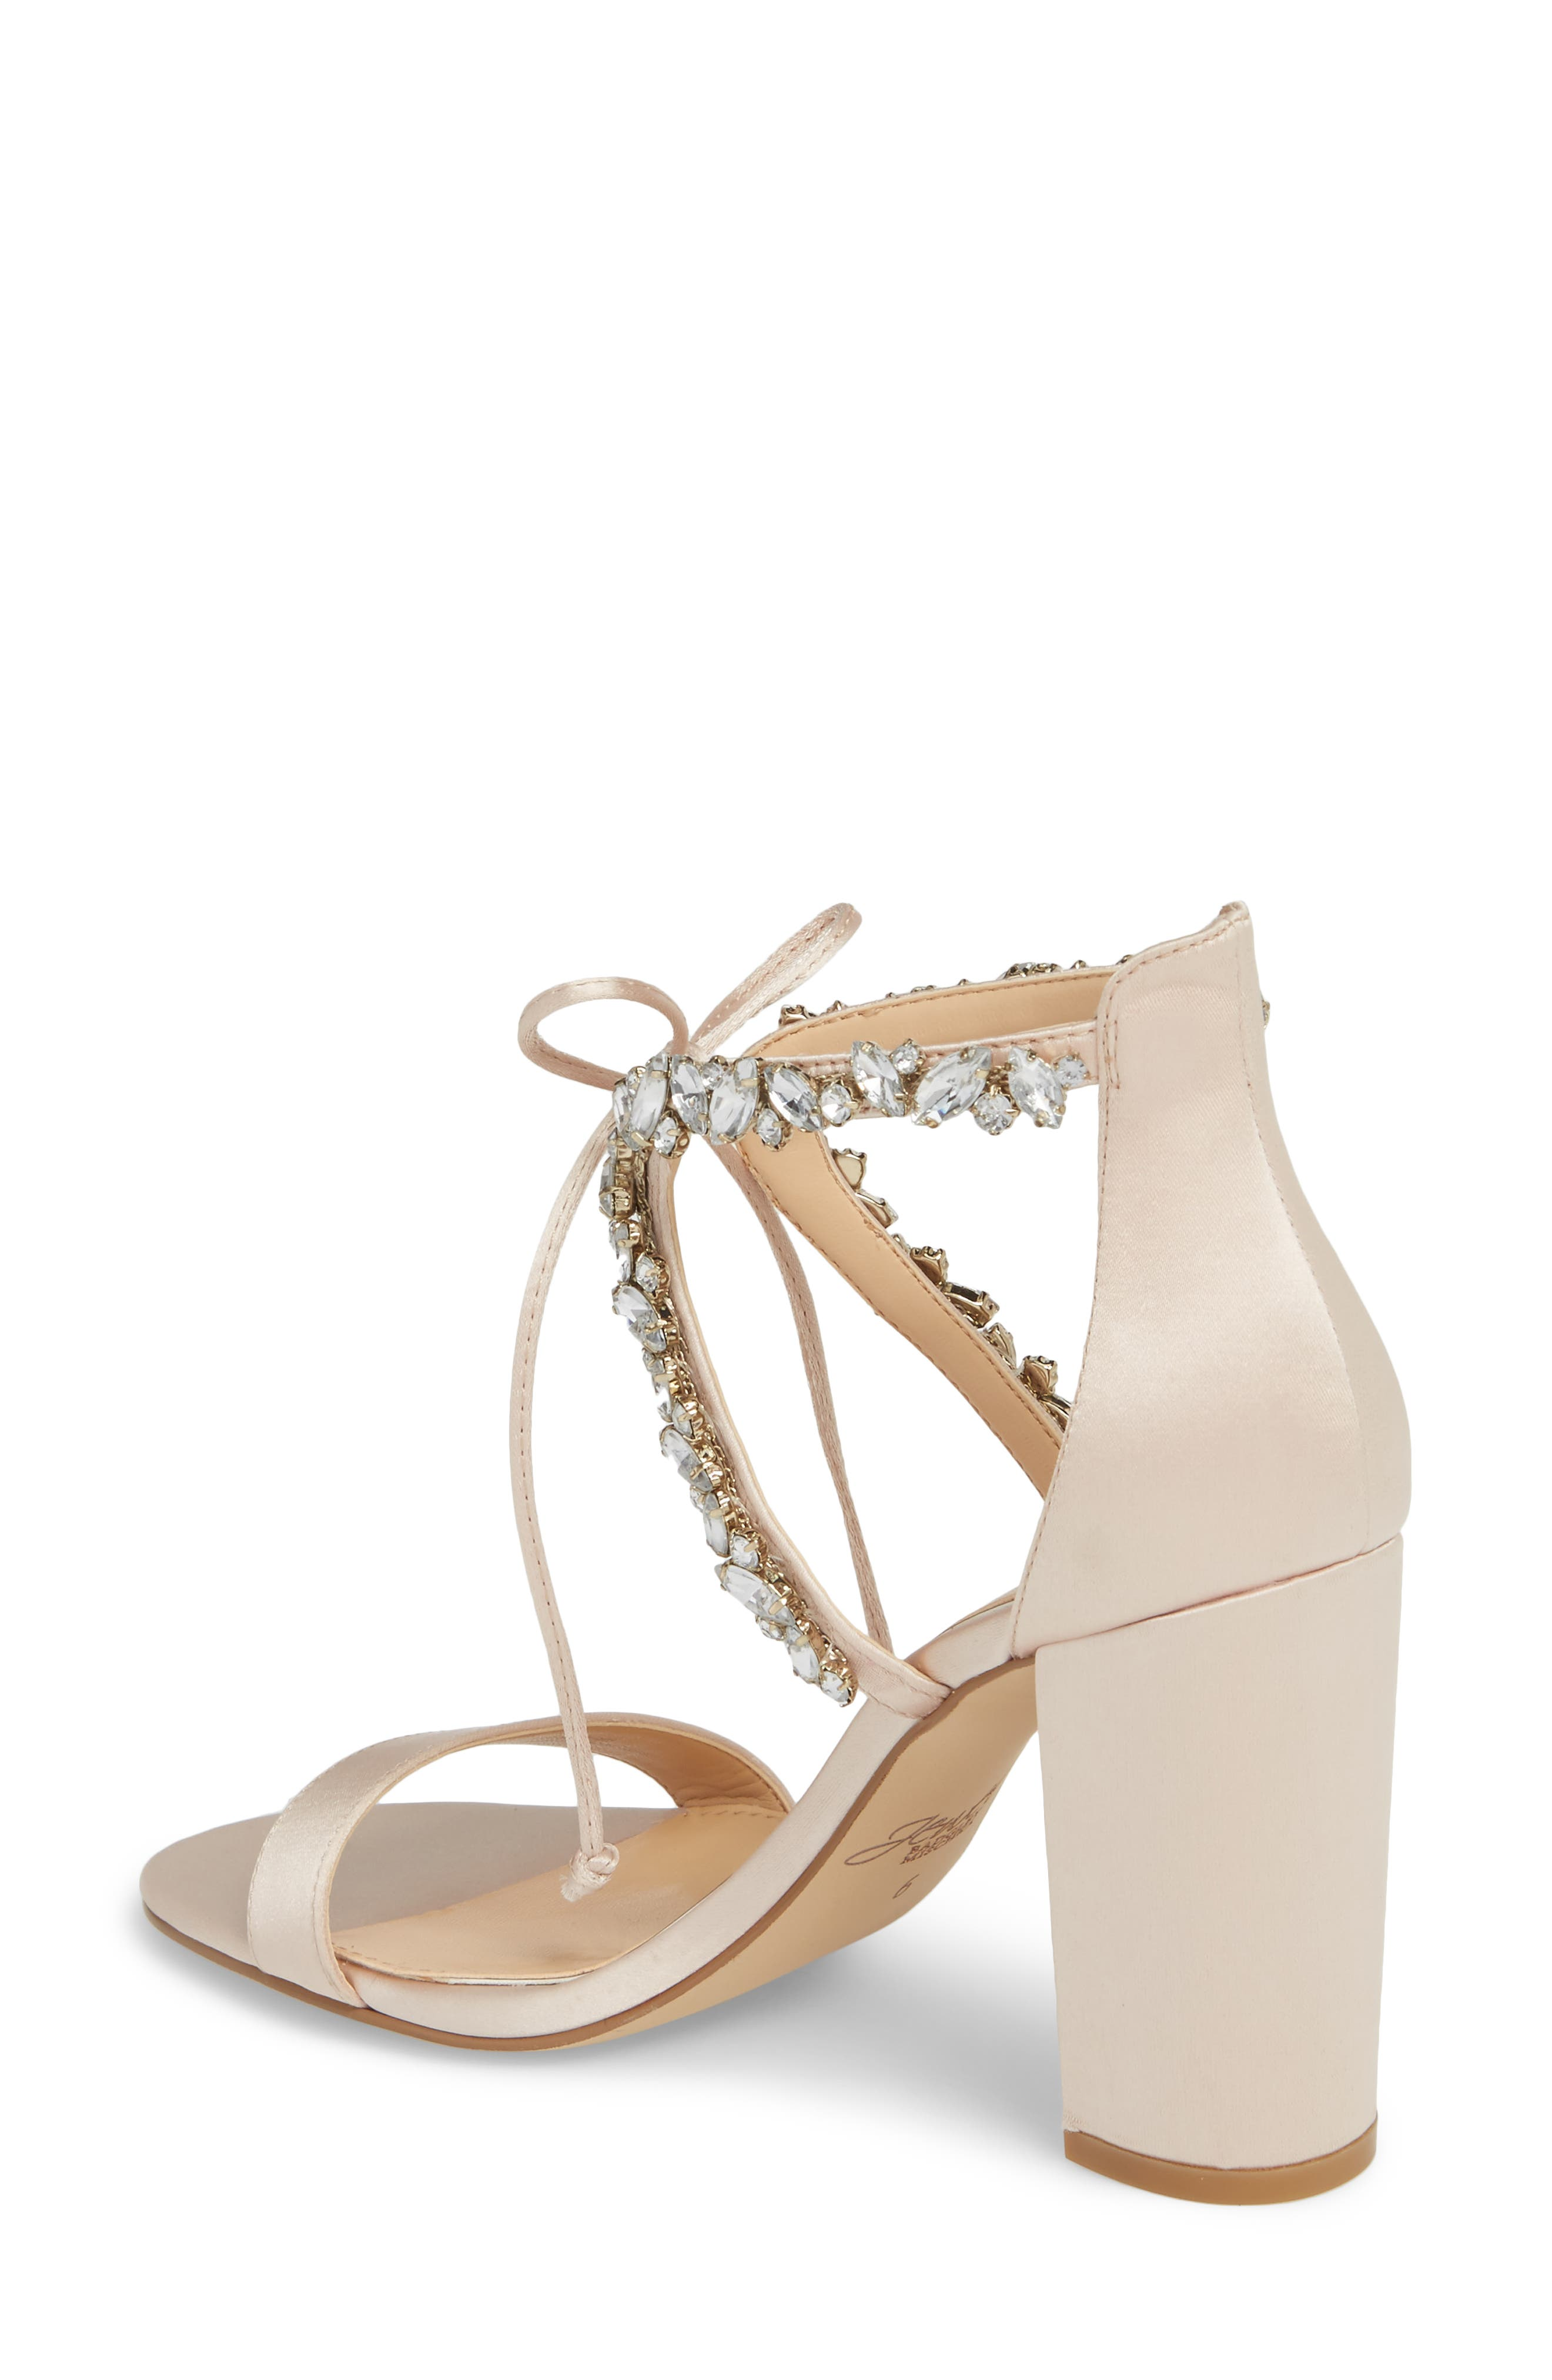 JEWEL BADGLEY MISCHKA,                             Thamar Embellished Sandal,                             Alternate thumbnail 2, color,                             CHAMPAGNE SATIN